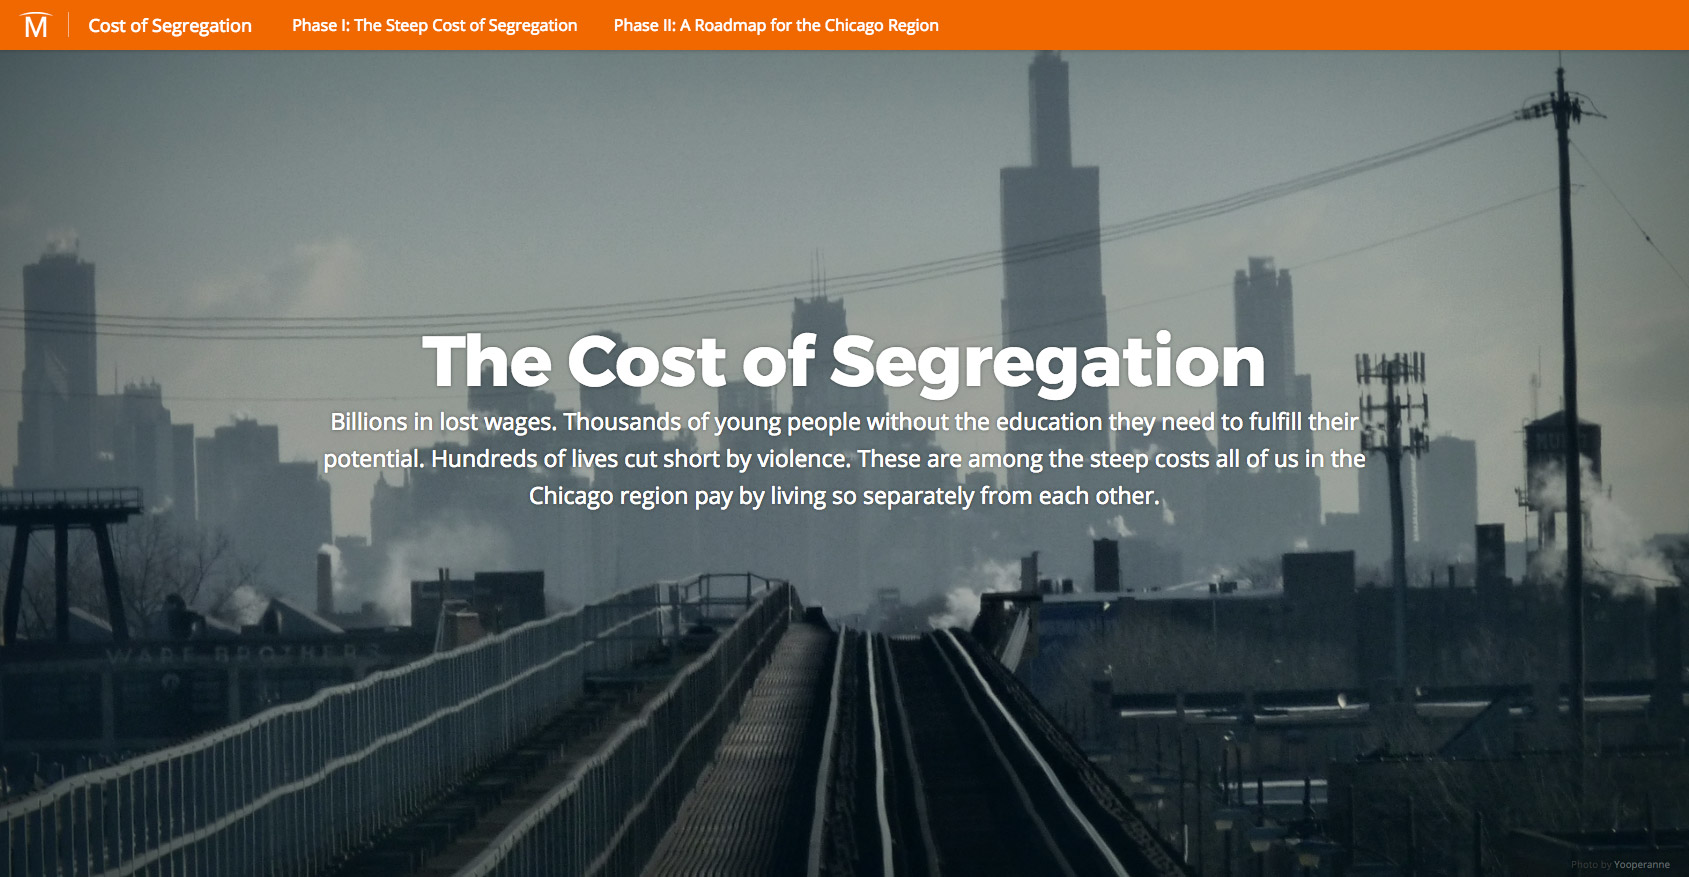 Cost of Segregation